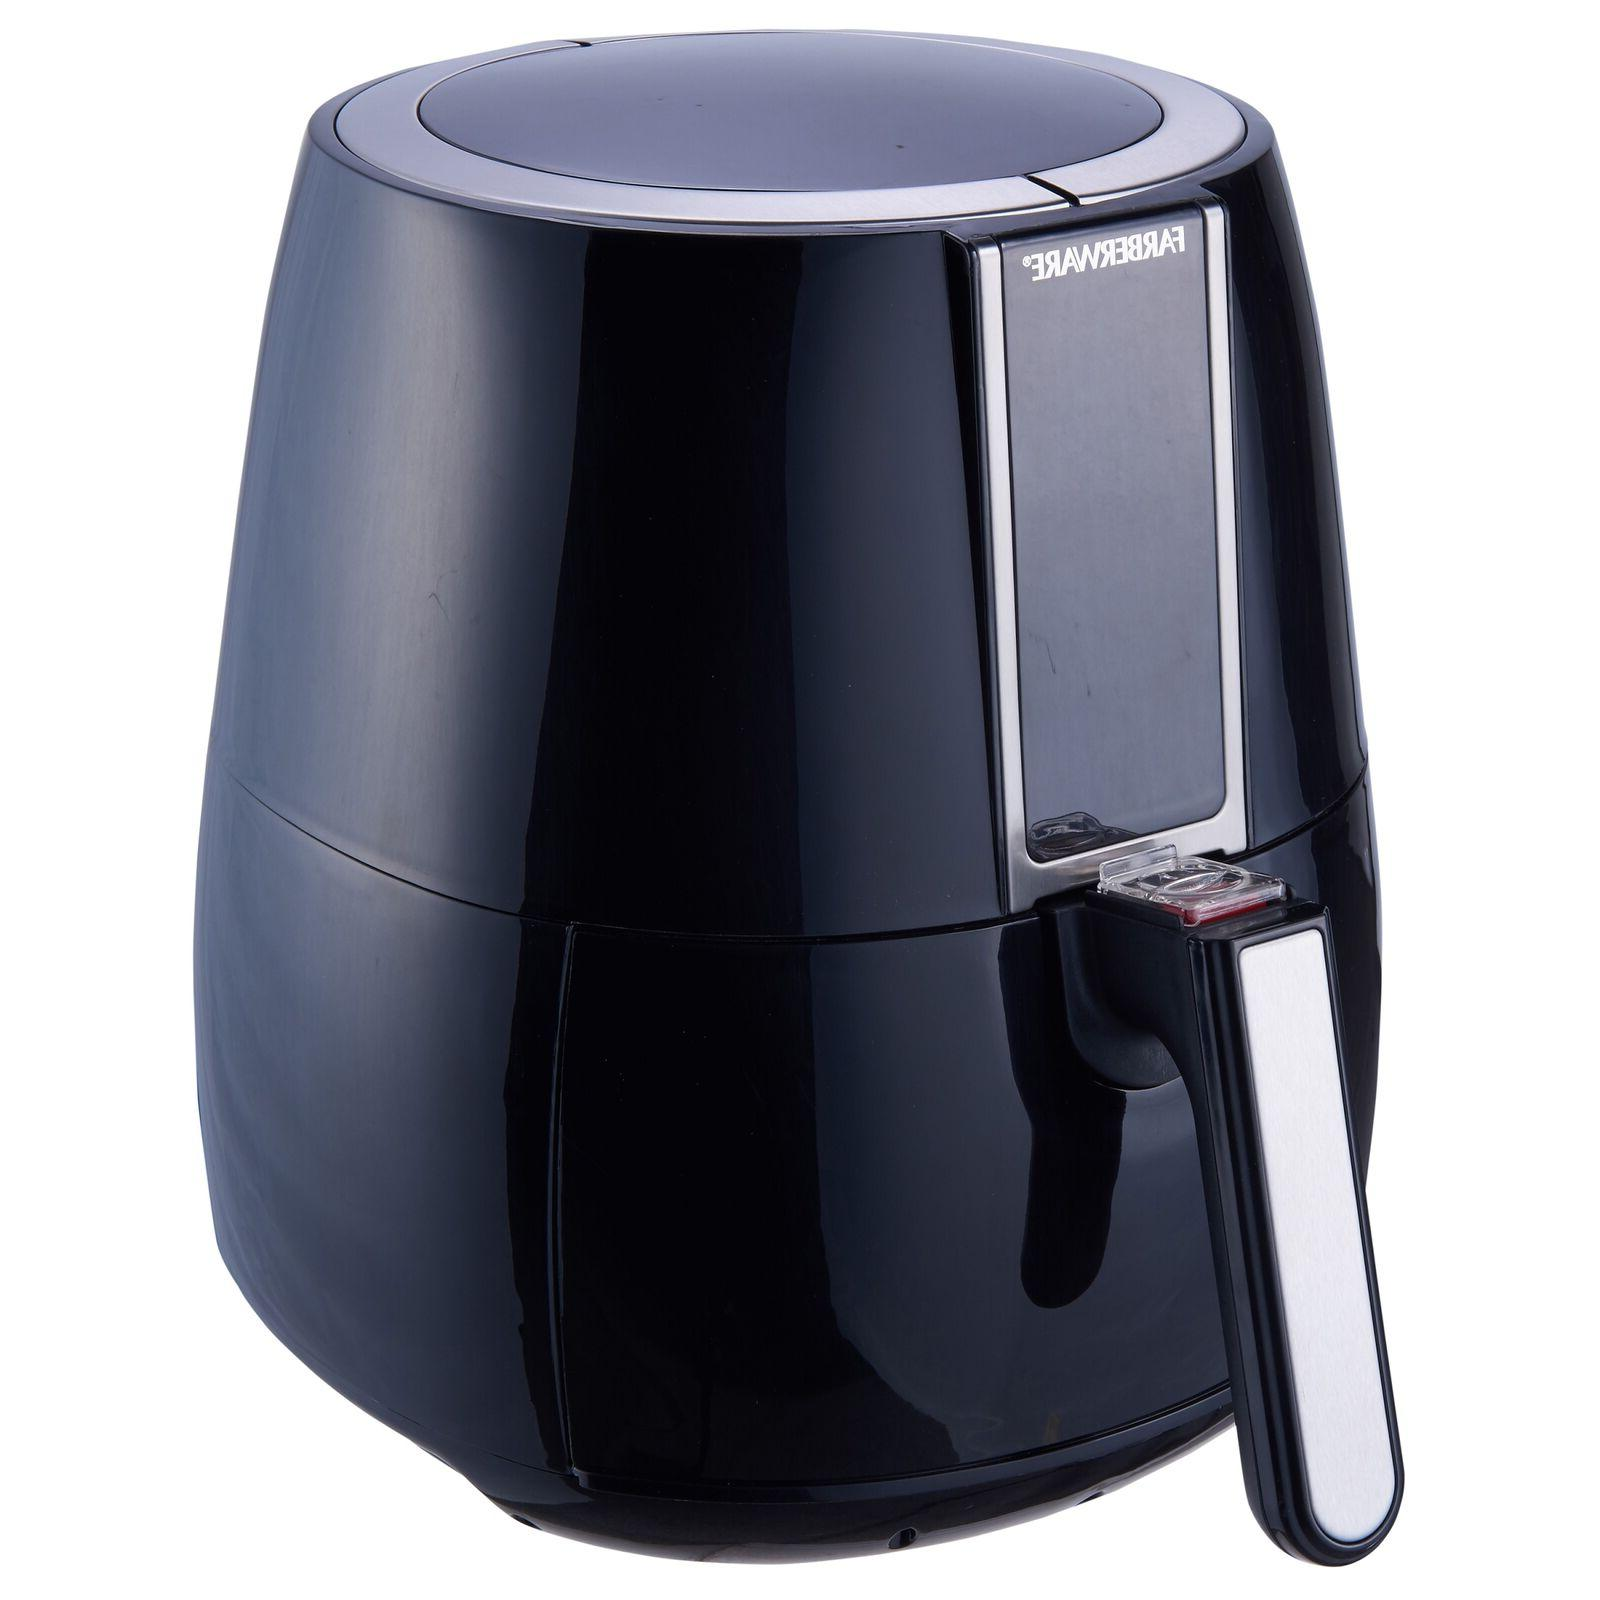 Farberware Digital Touchscreen Air Fryer Bake Grill Fry